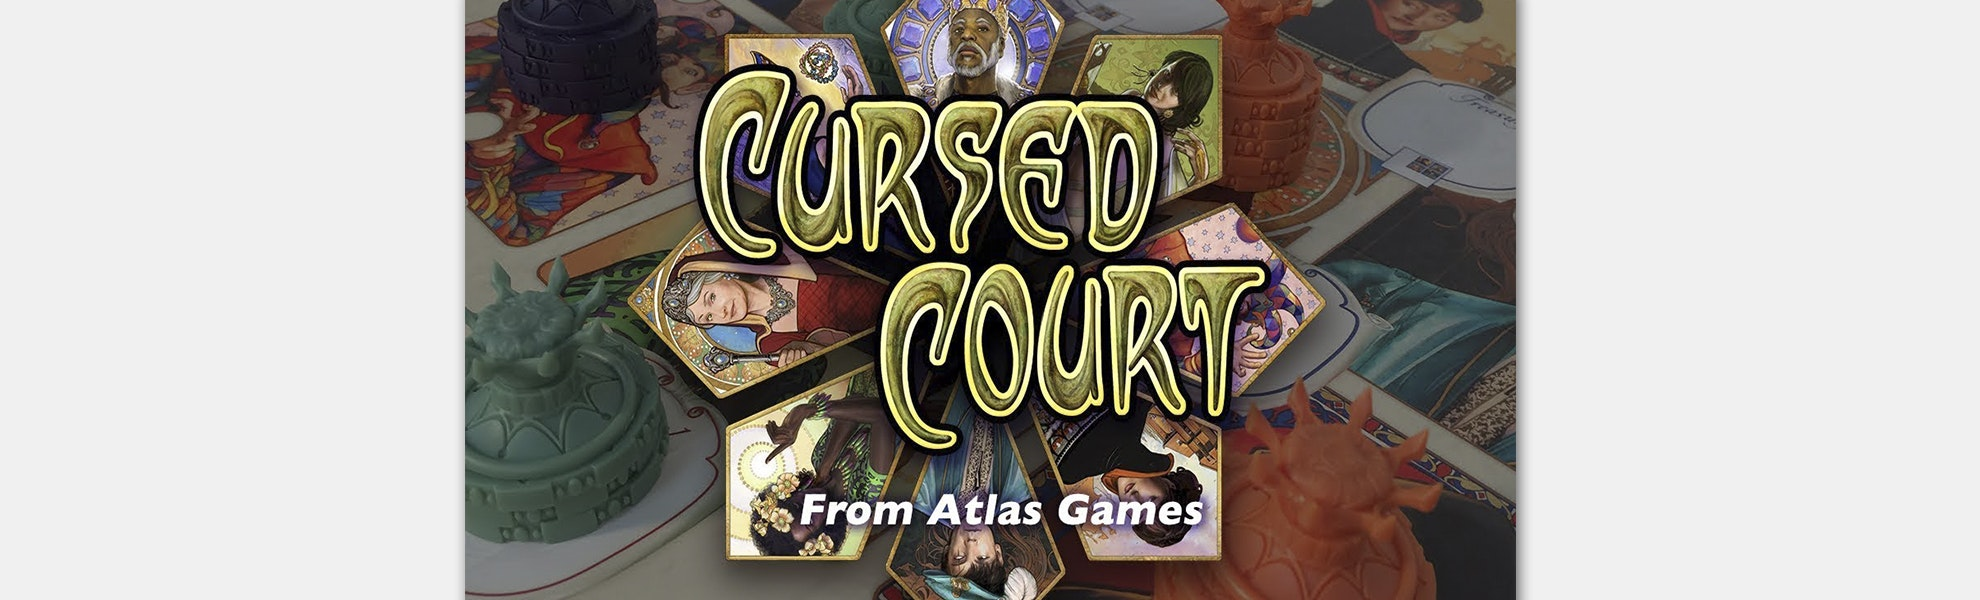 Cursed Court Board Game